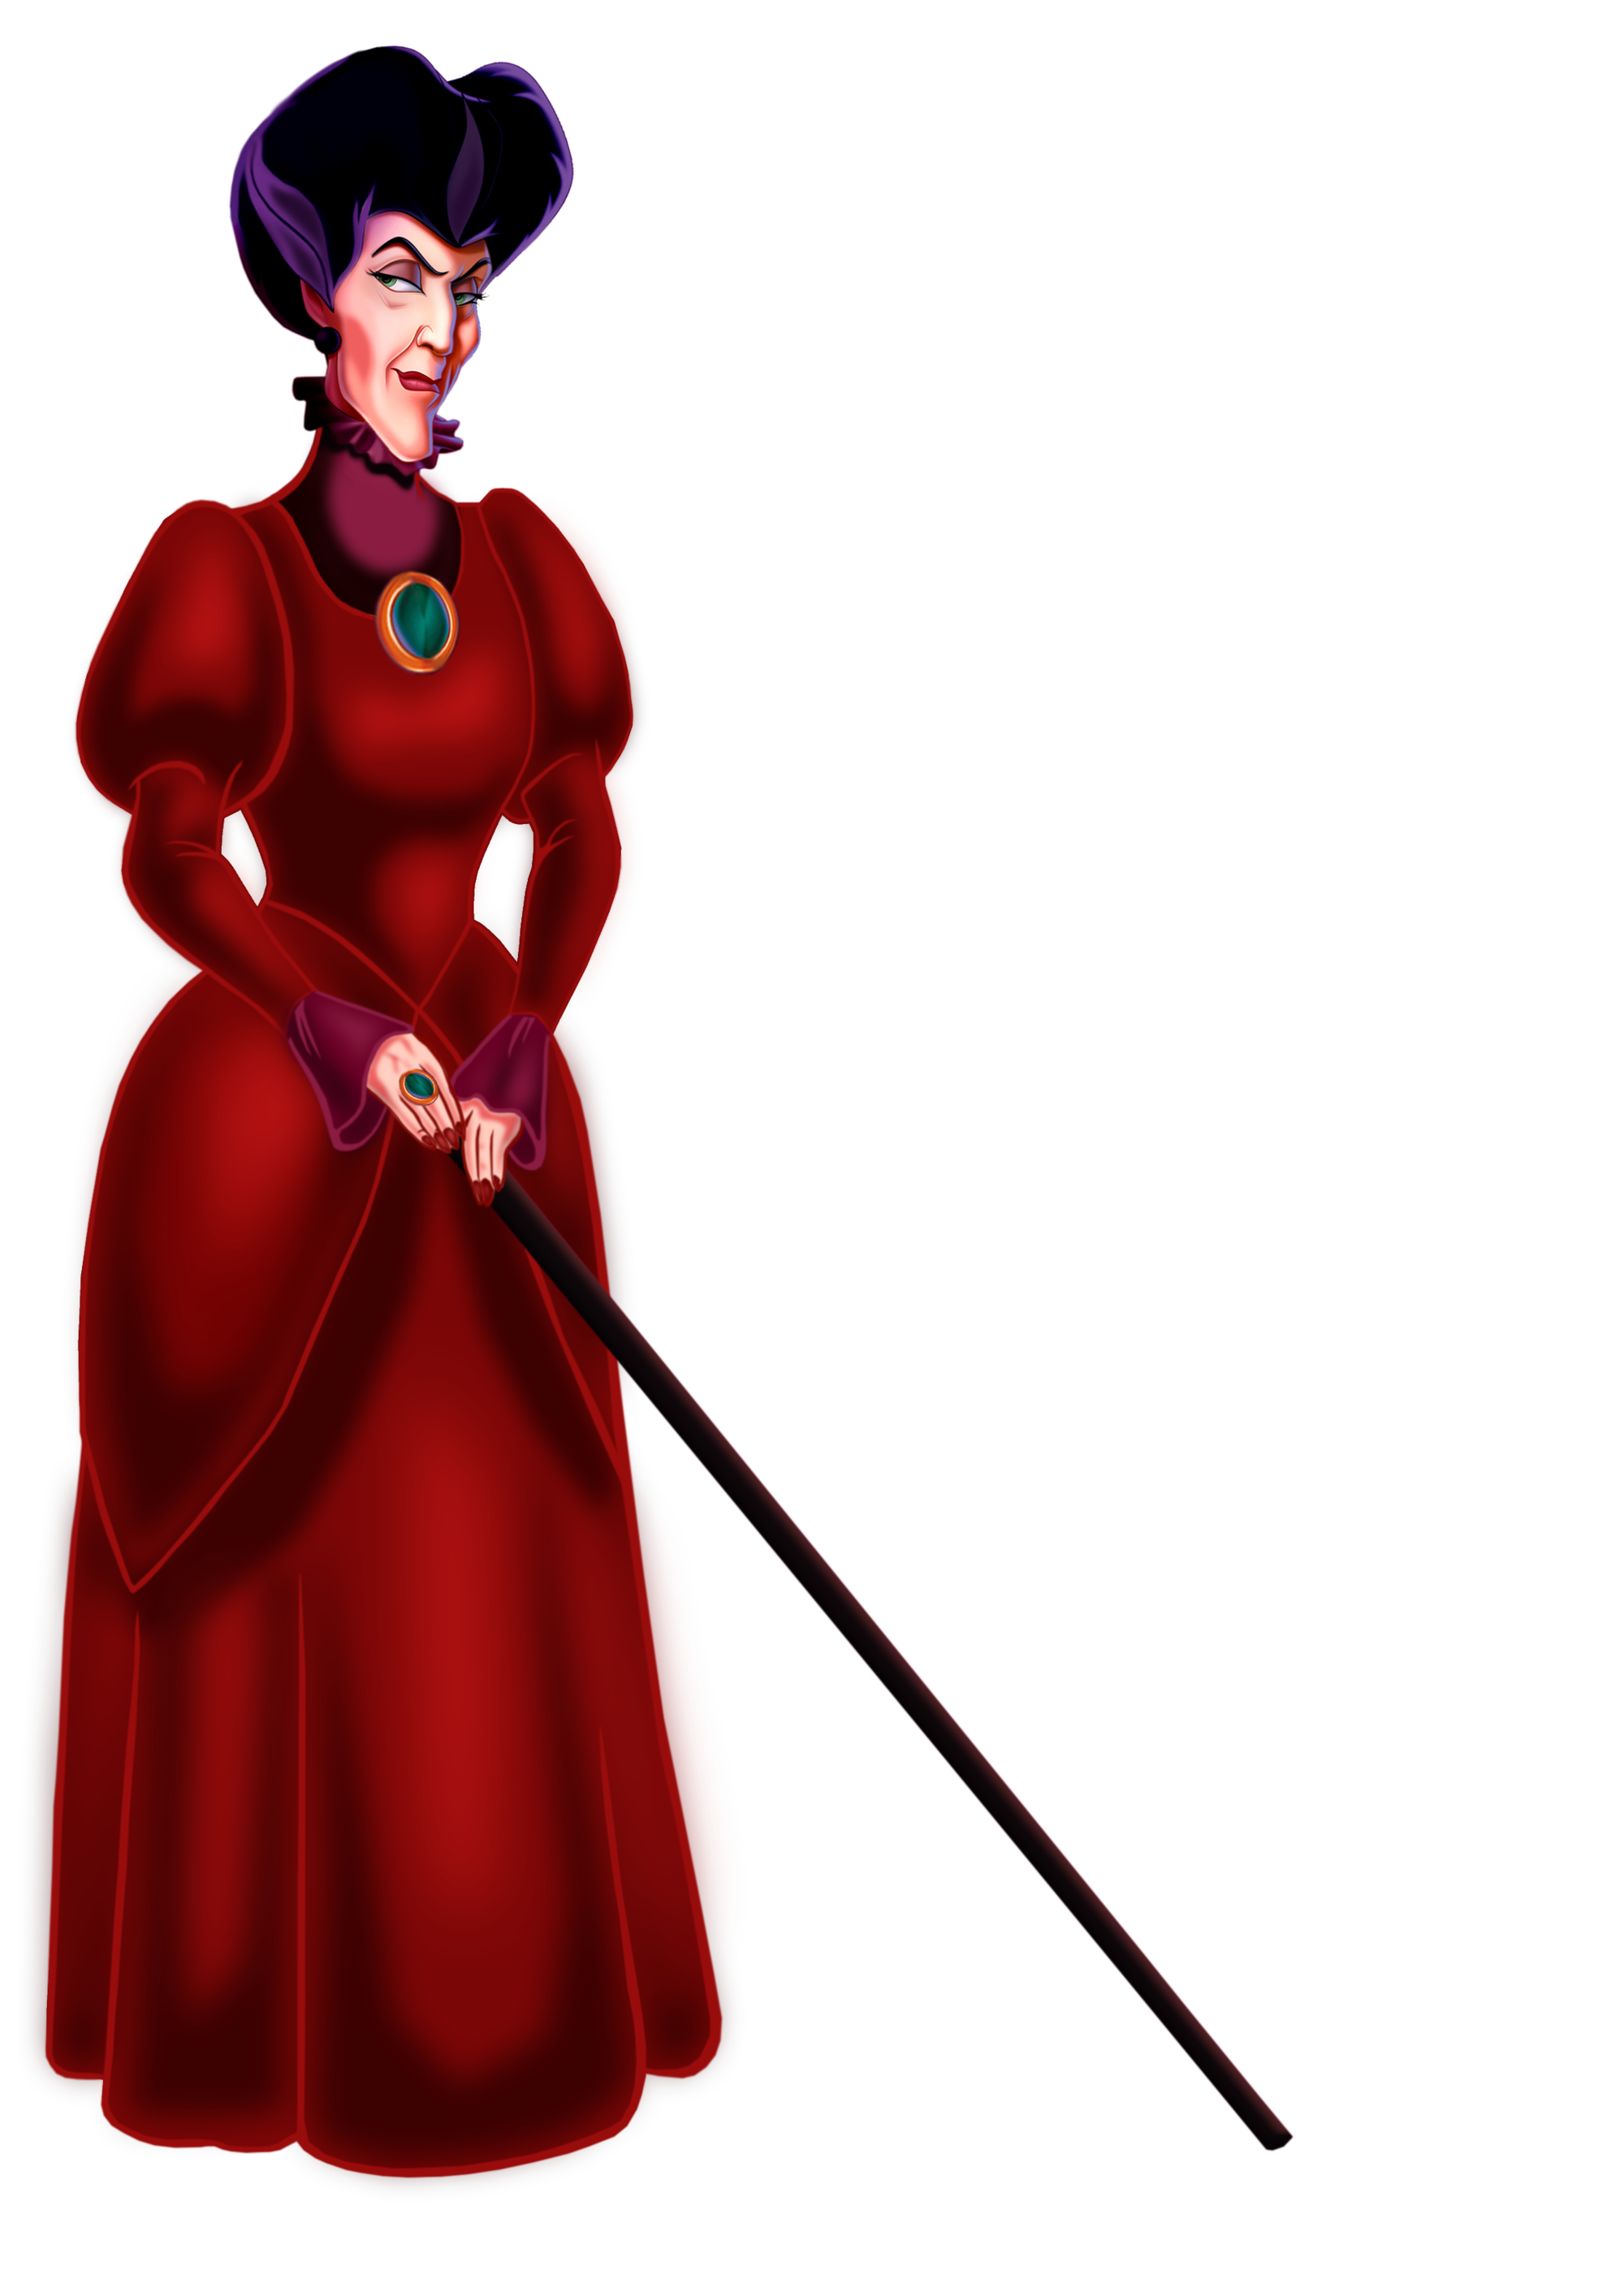 Wicked stepmother cinderella clipart clipart royalty free stock Lady Tremaine   Villains Wiki   FANDOM powered by Wikia clipart royalty free stock